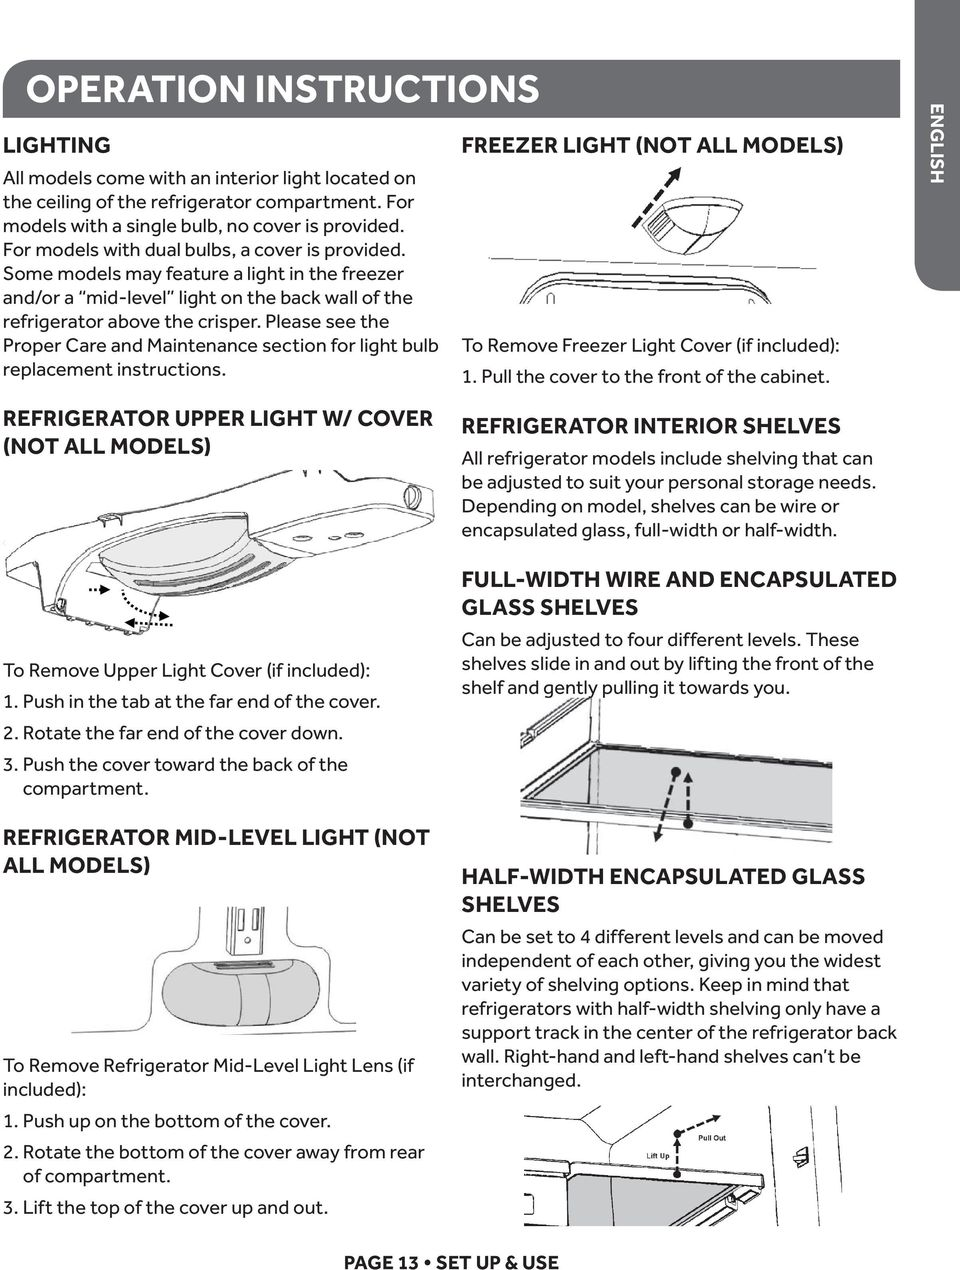 Please see the Proper Care and Maintenance section for light bulb replacement instructions. FREEZER LIGHT (NOT ALL MODELS) To Remove Freezer Light Cover (if included): 1.